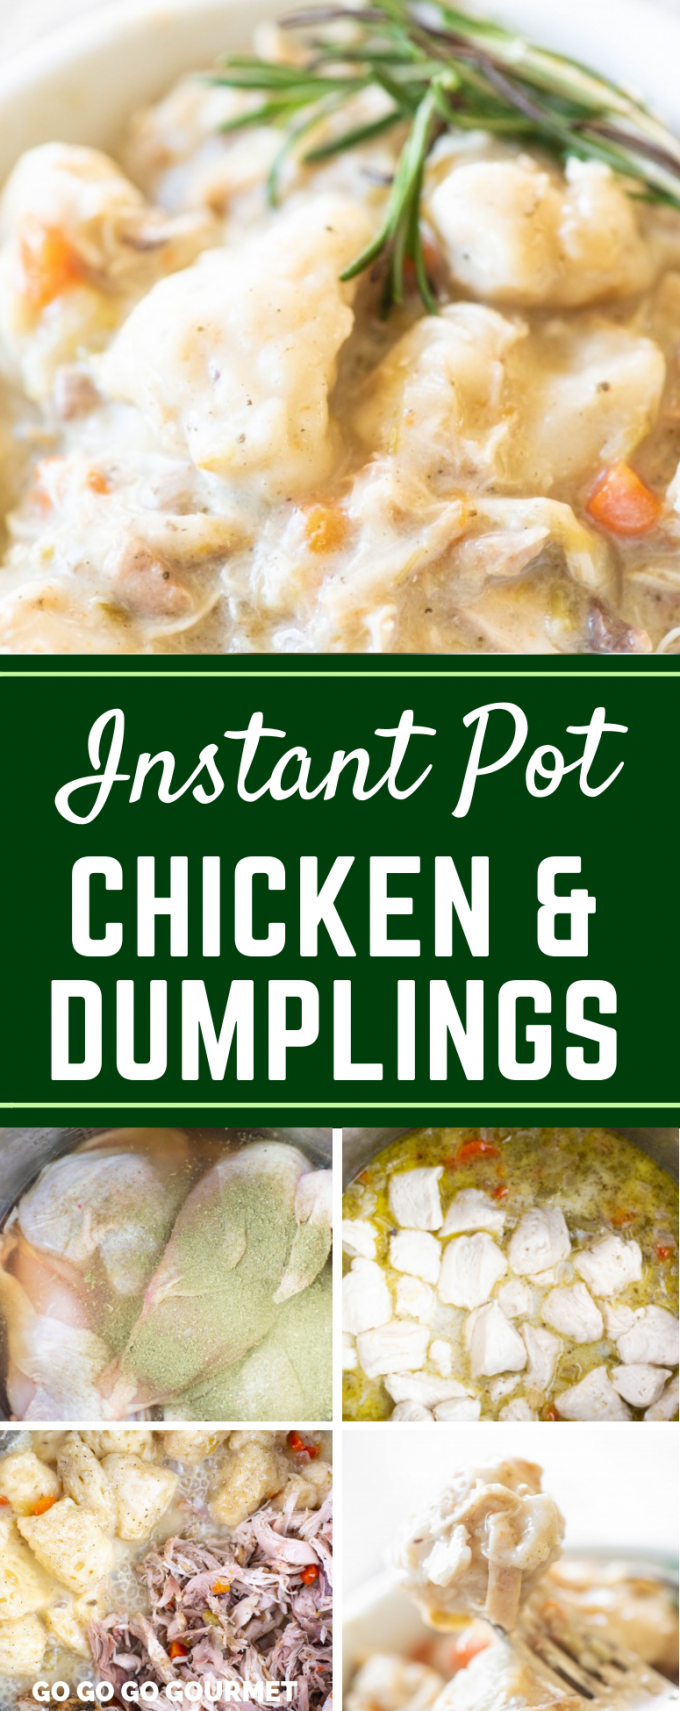 This Instant Pot Chicken and Dumplings recipe is made easy with biscuits from the can! It is one of the best easy recipes when you are  craving comfort food. Forget the Bisquick biscuits, these Pillsbury biscuits are even better! Dinner from scratch, made in the electric pressure cooker for the win! #gogogogourmet #instantpotchickenanddumplings #easyinstantpotrecipes #comfortfoodrecipes via @gogogogourmet